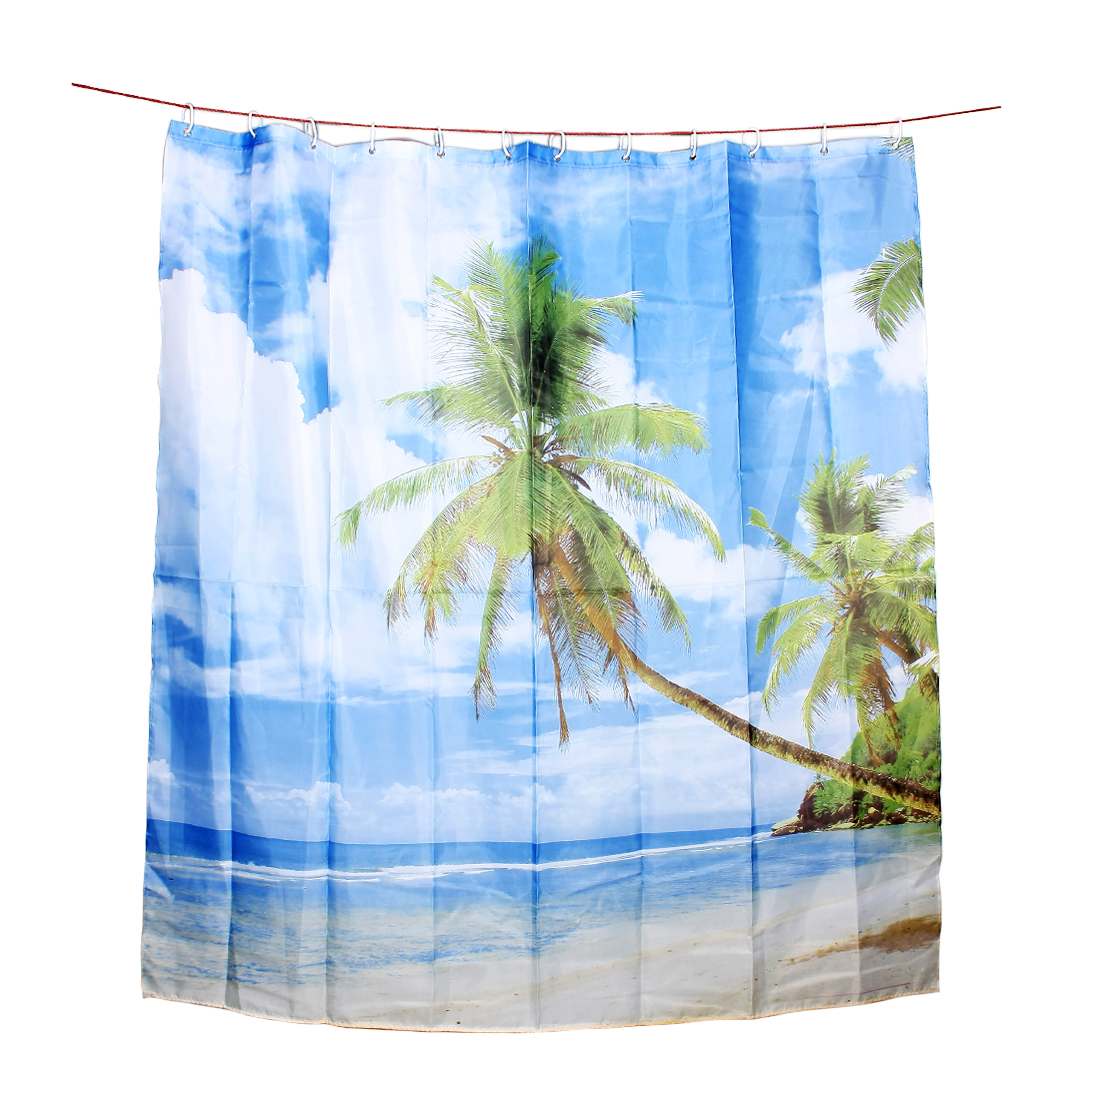 Printed Polyester Palm Beach Shower Curtain w 12 Hook Rings 180x180cm